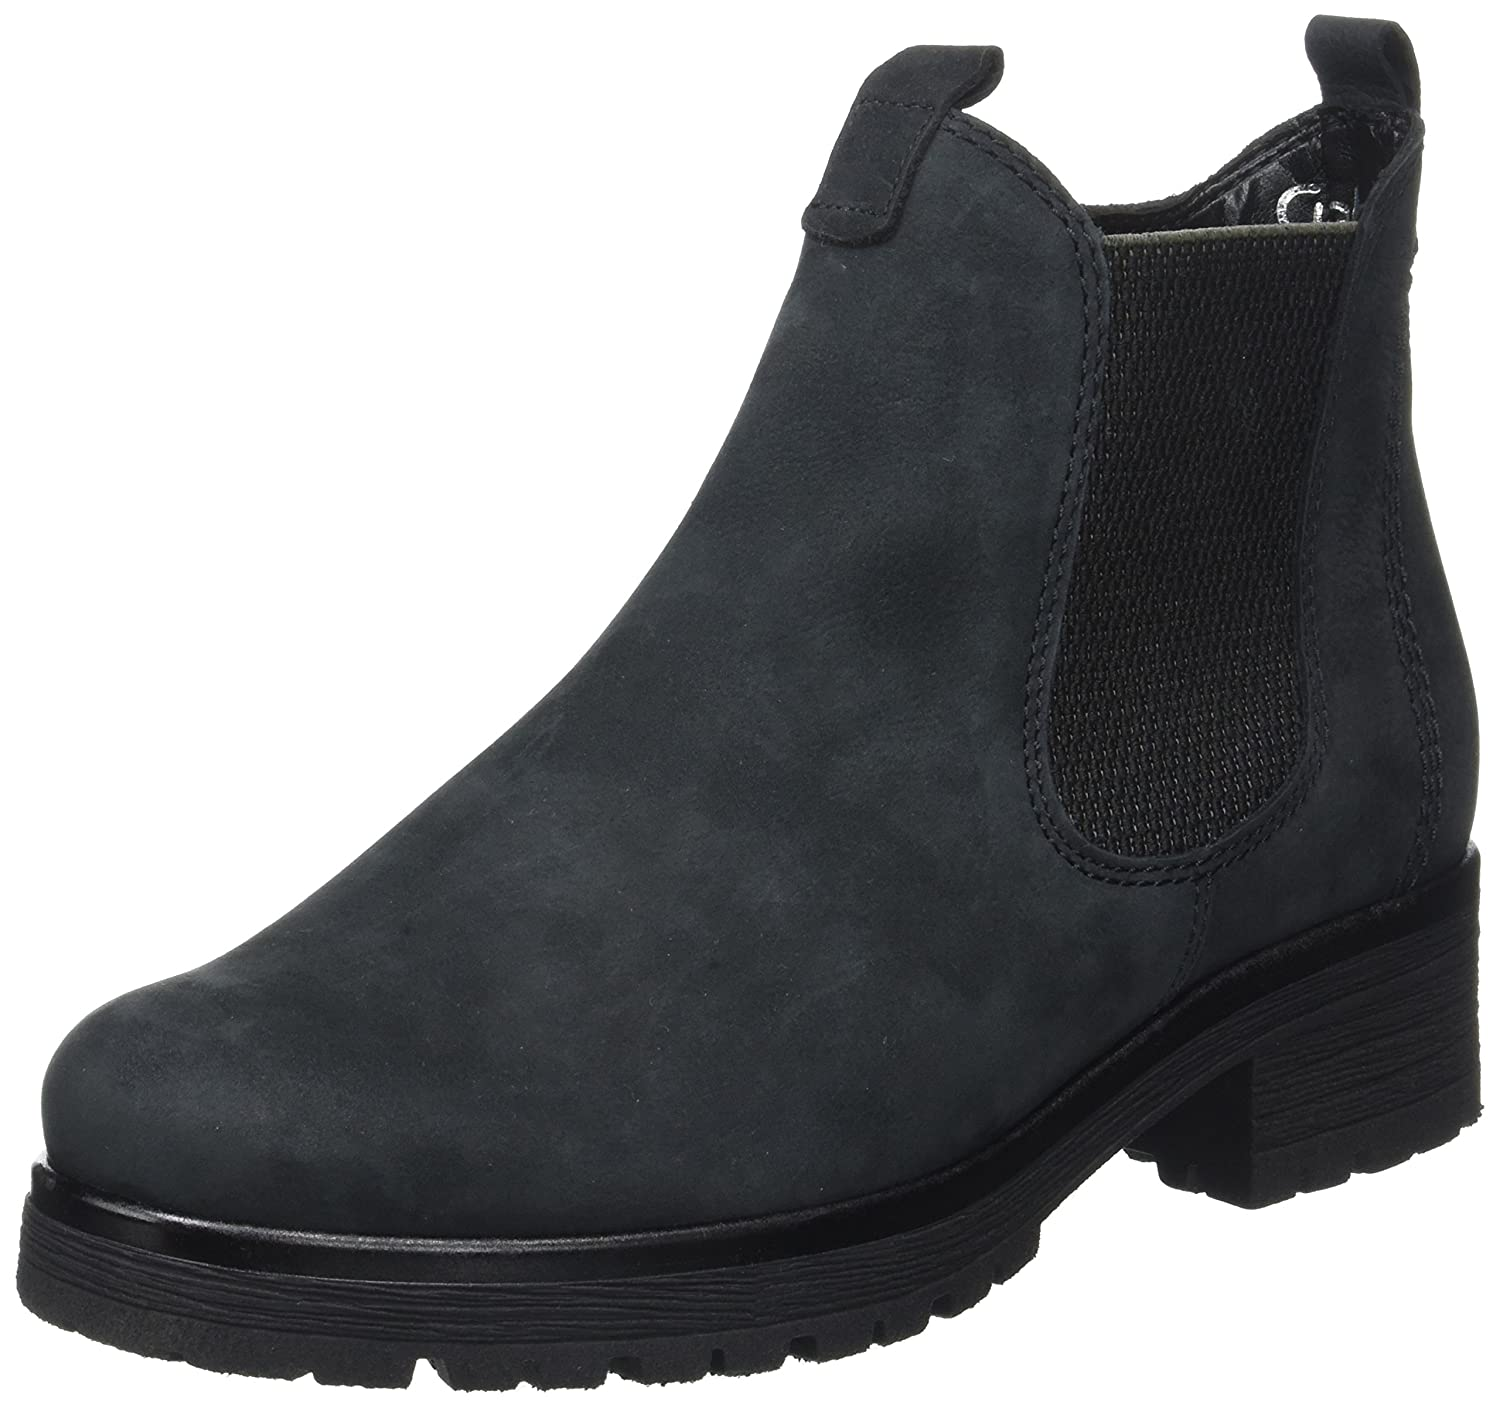 373ef8bcf98a Gabor Agenda Womens Chelsea Boots  Amazon.co.uk  Shoes   Bags